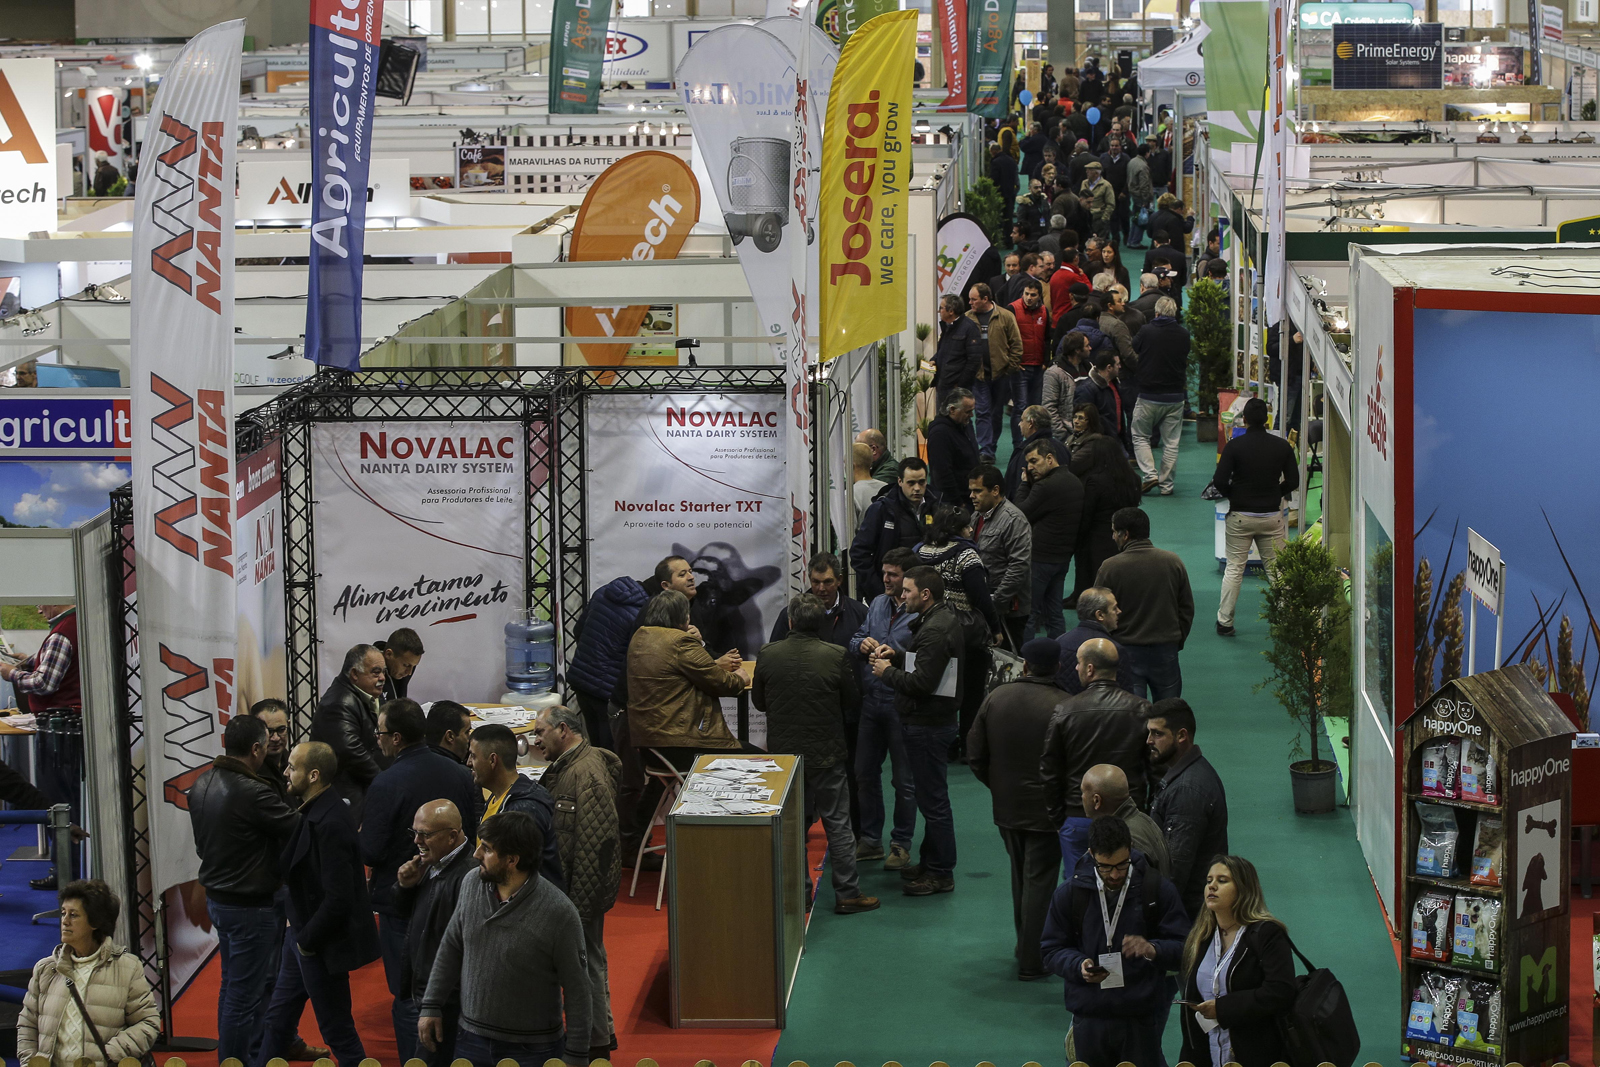 A AGRO é a maior feira do sector primário do Norte do país e da Galiza e é a única, ao nível nacional, que faz parte da EURASCO (European Federation of Agricultural Exhibitions and Show Organizers)